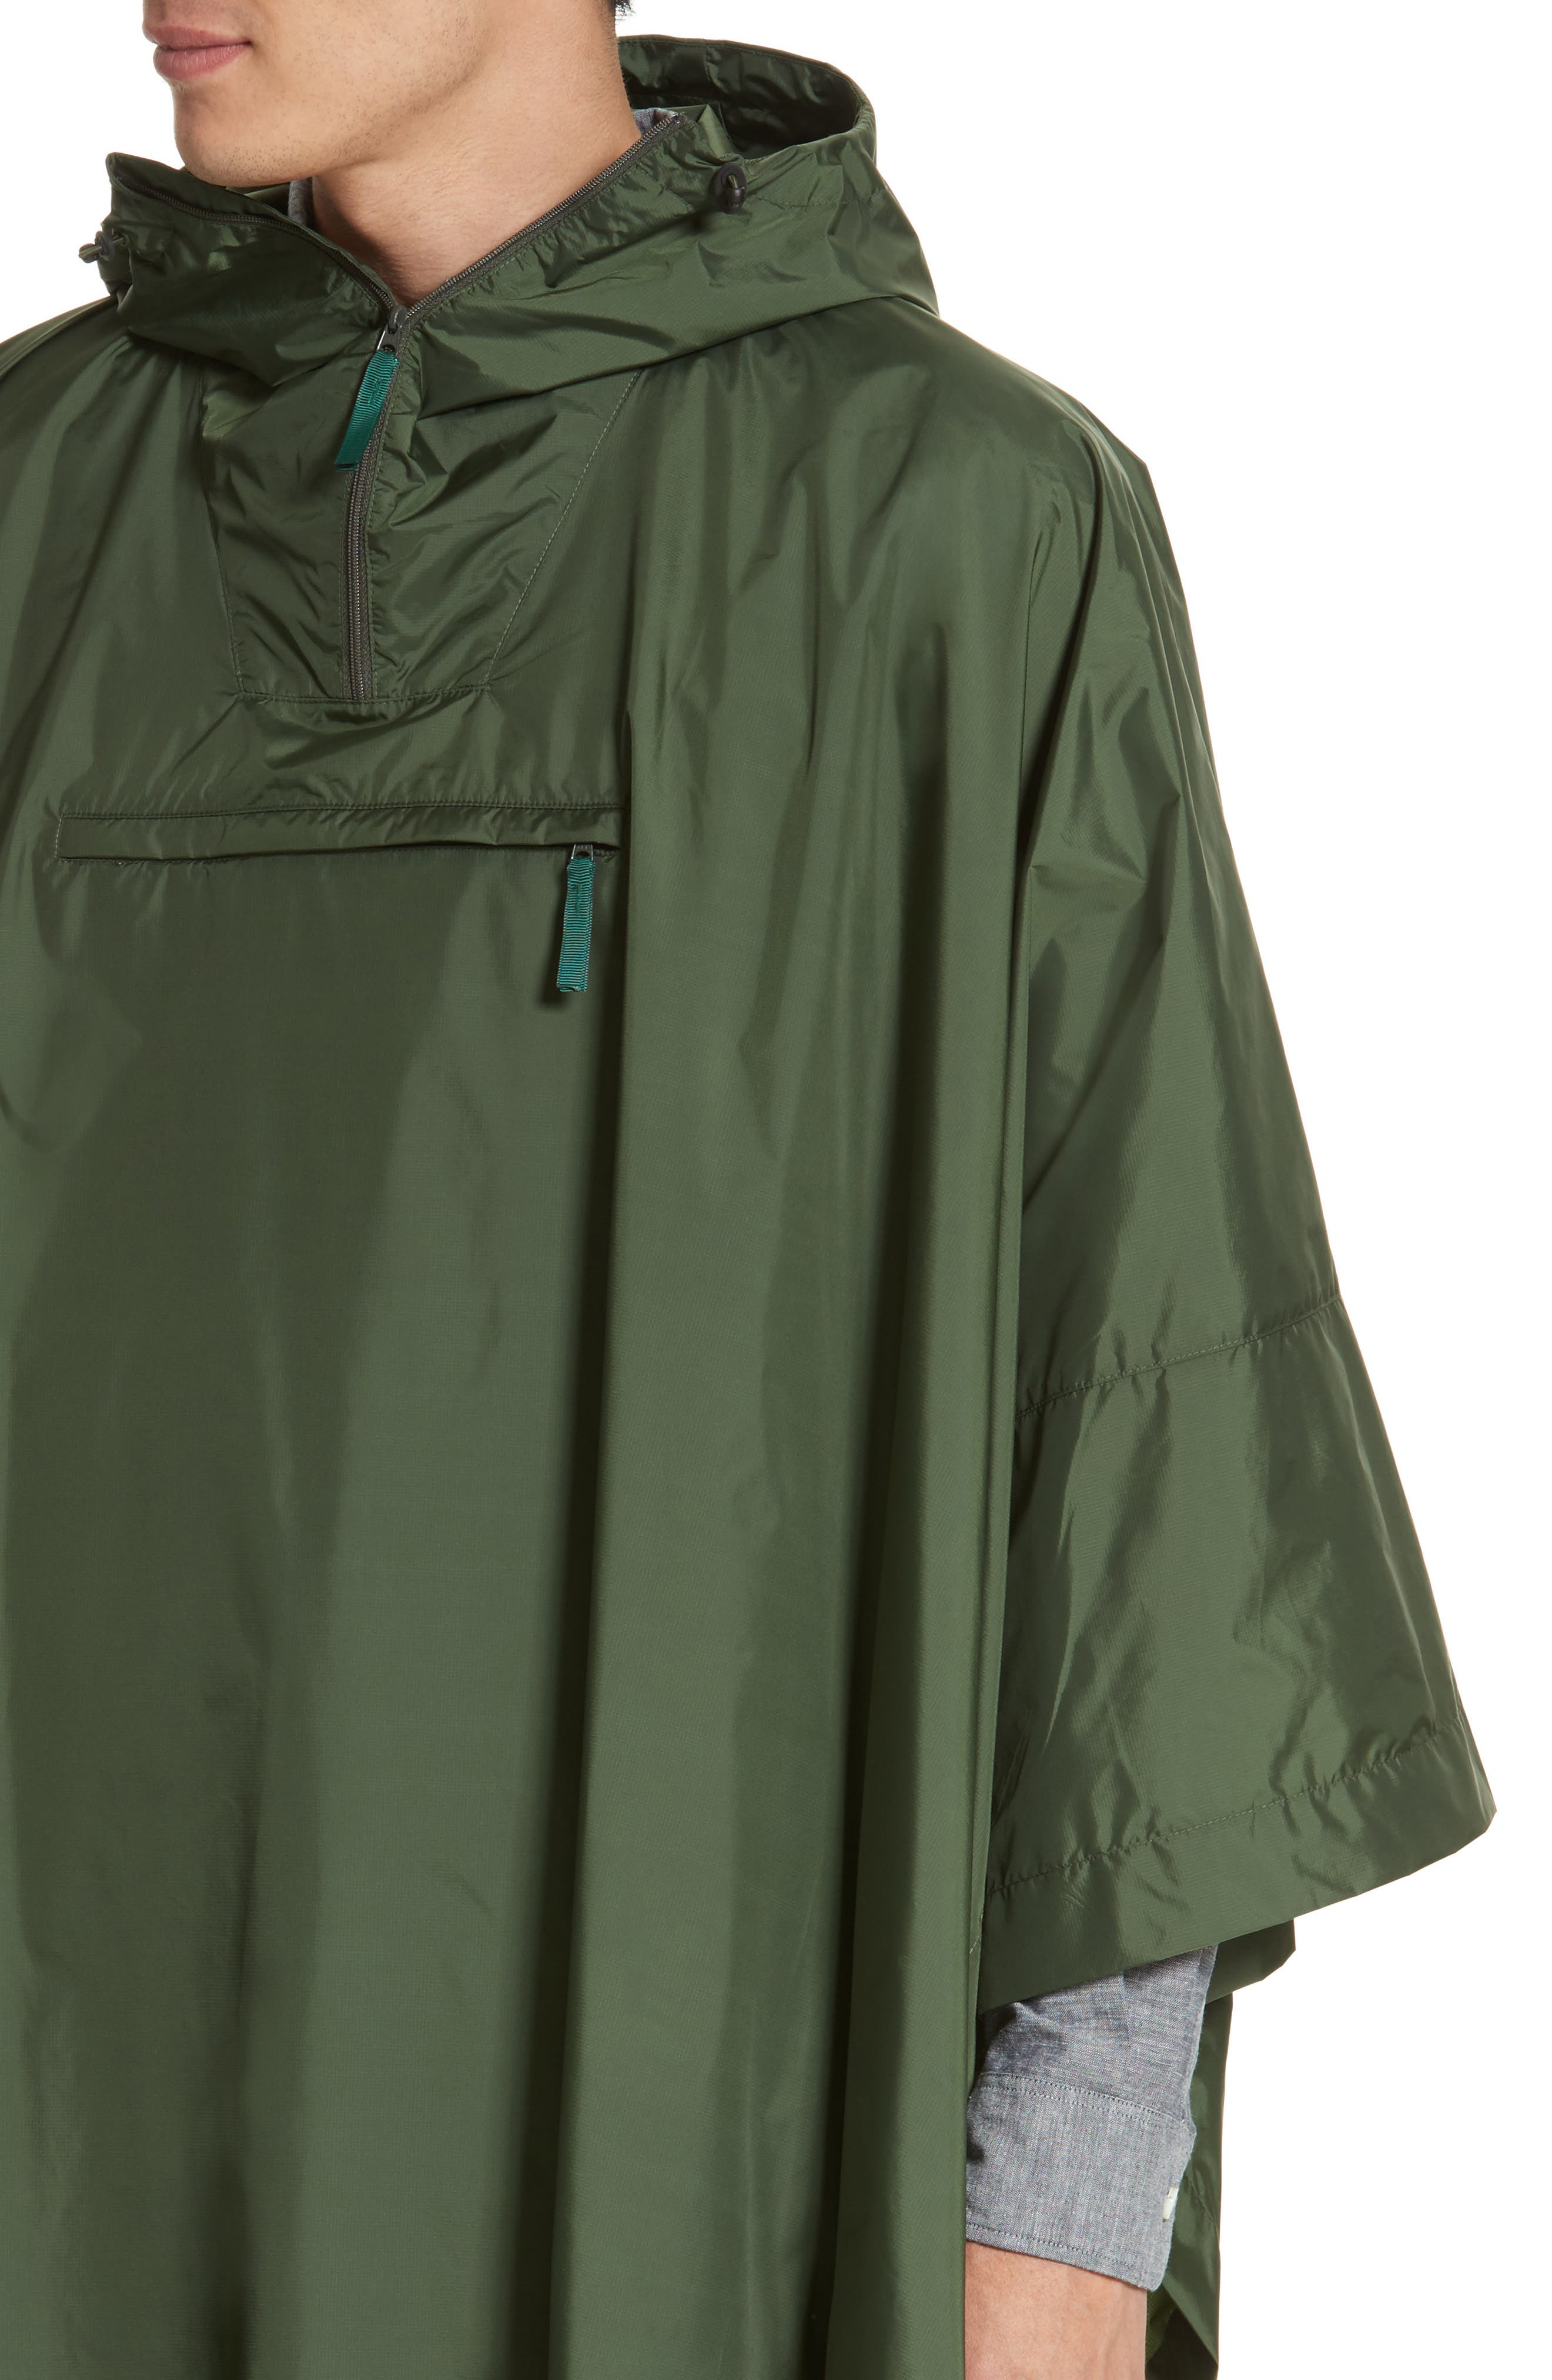 Packable Nylon Poncho,                             Alternate thumbnail 4, color,                             Forest Green